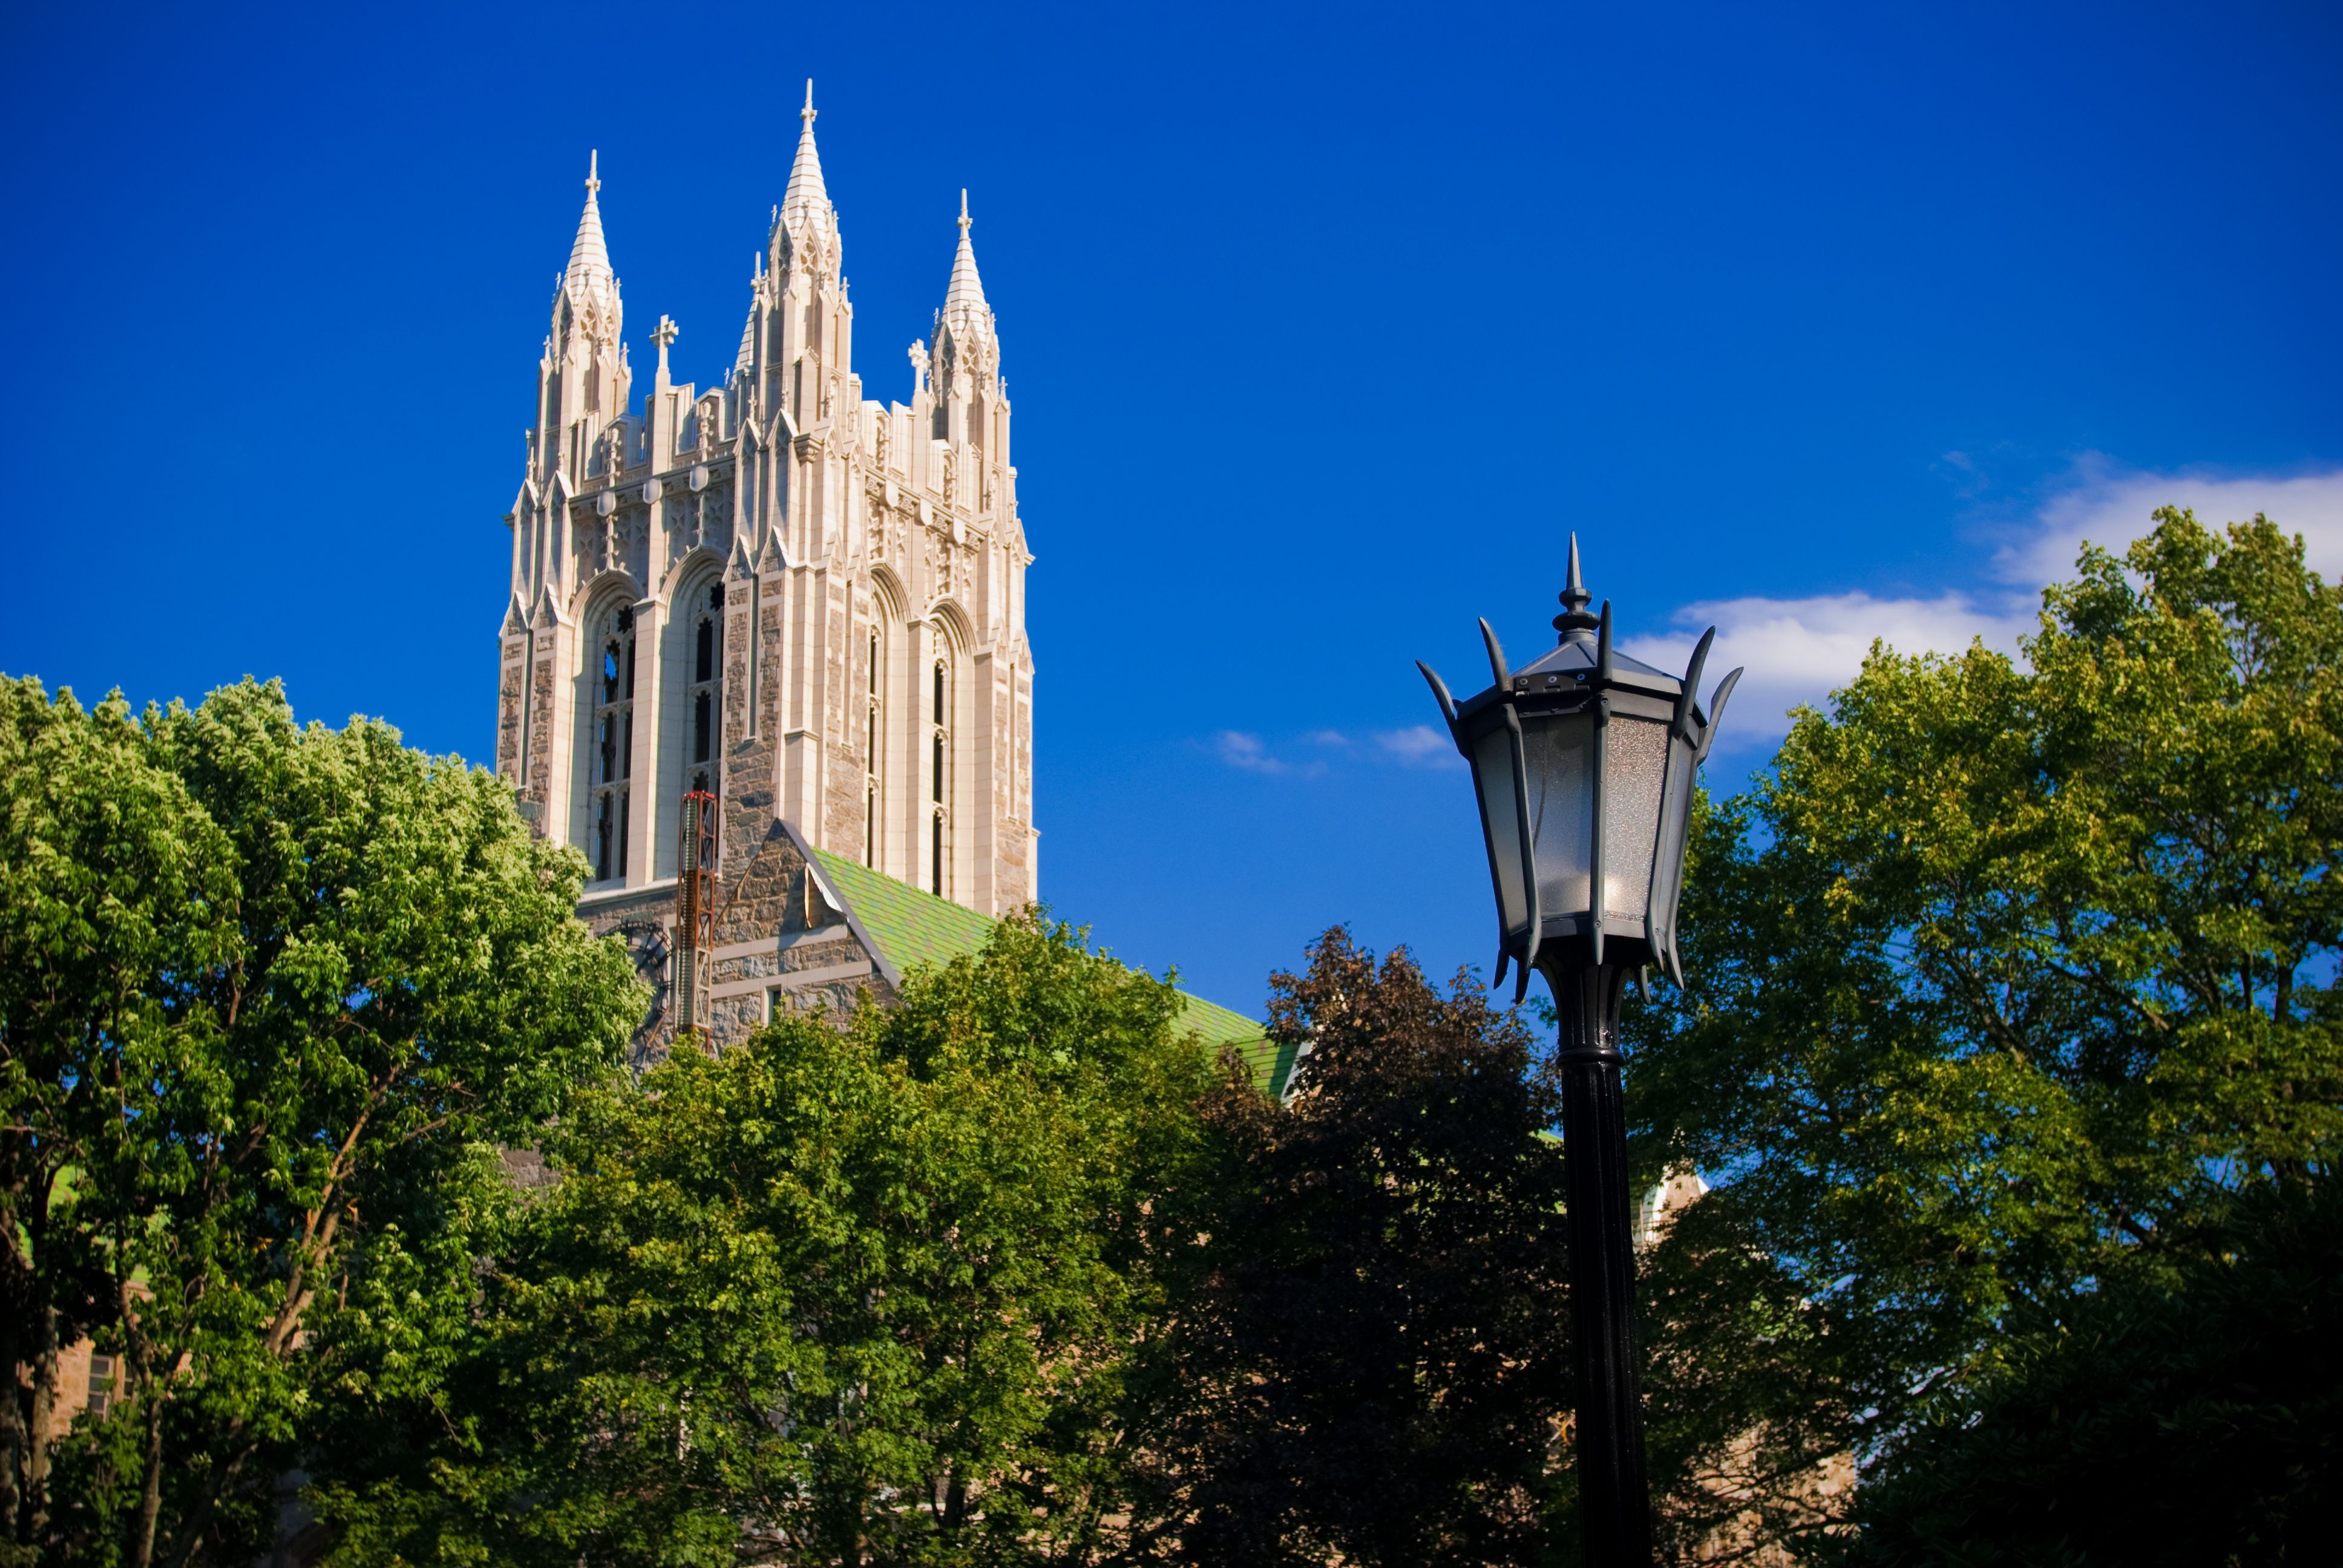 Gasson Hall on Boston College campus in Chestnut Hill, MA